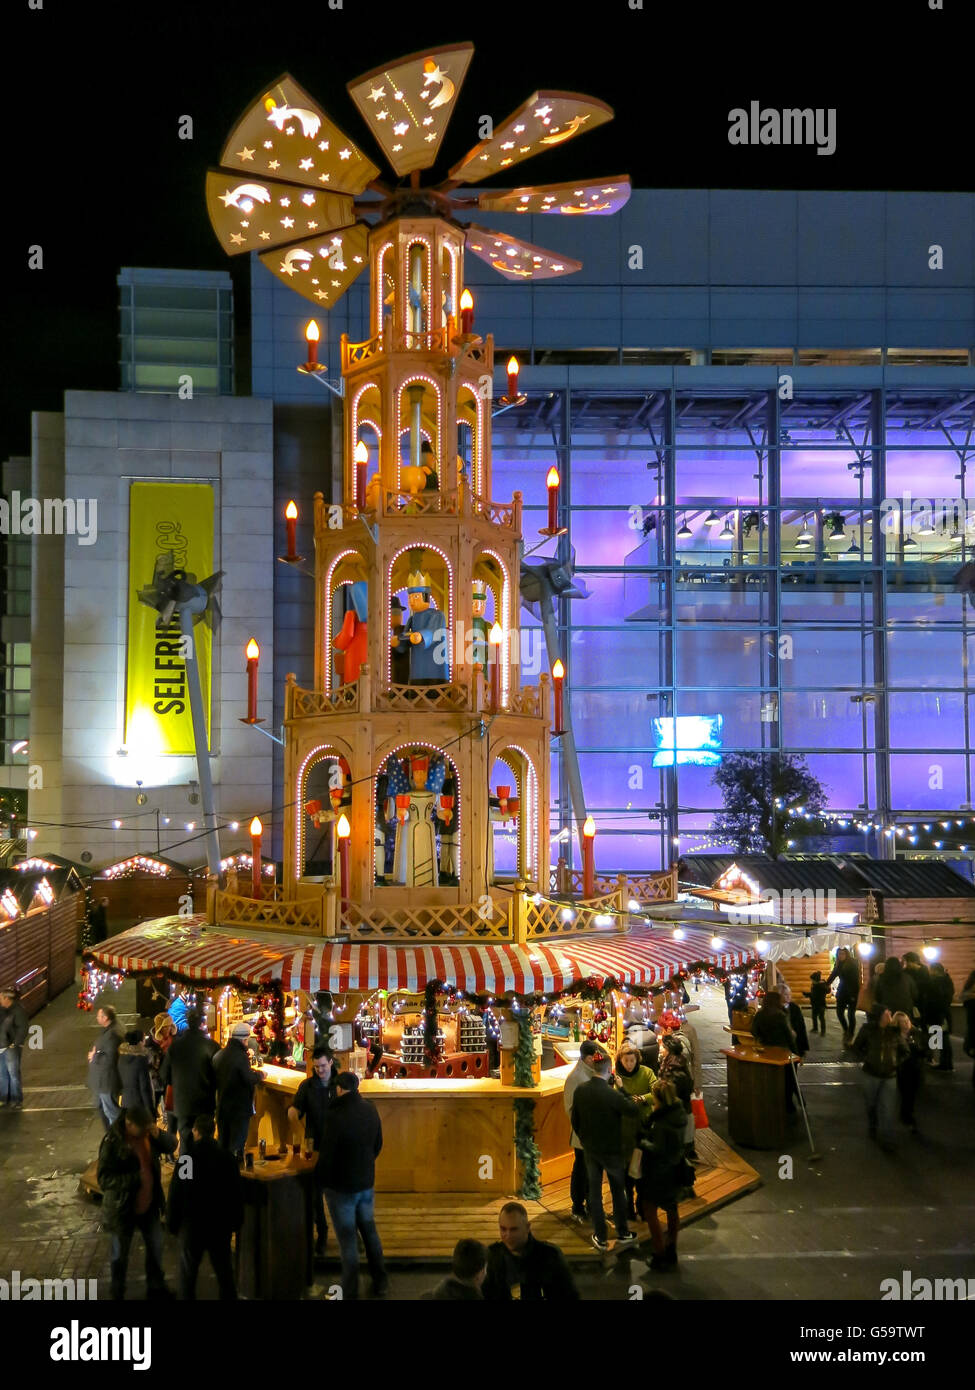 Night scene with people on Christmas Market in Manchester, England, United Kingdom - Stock Image